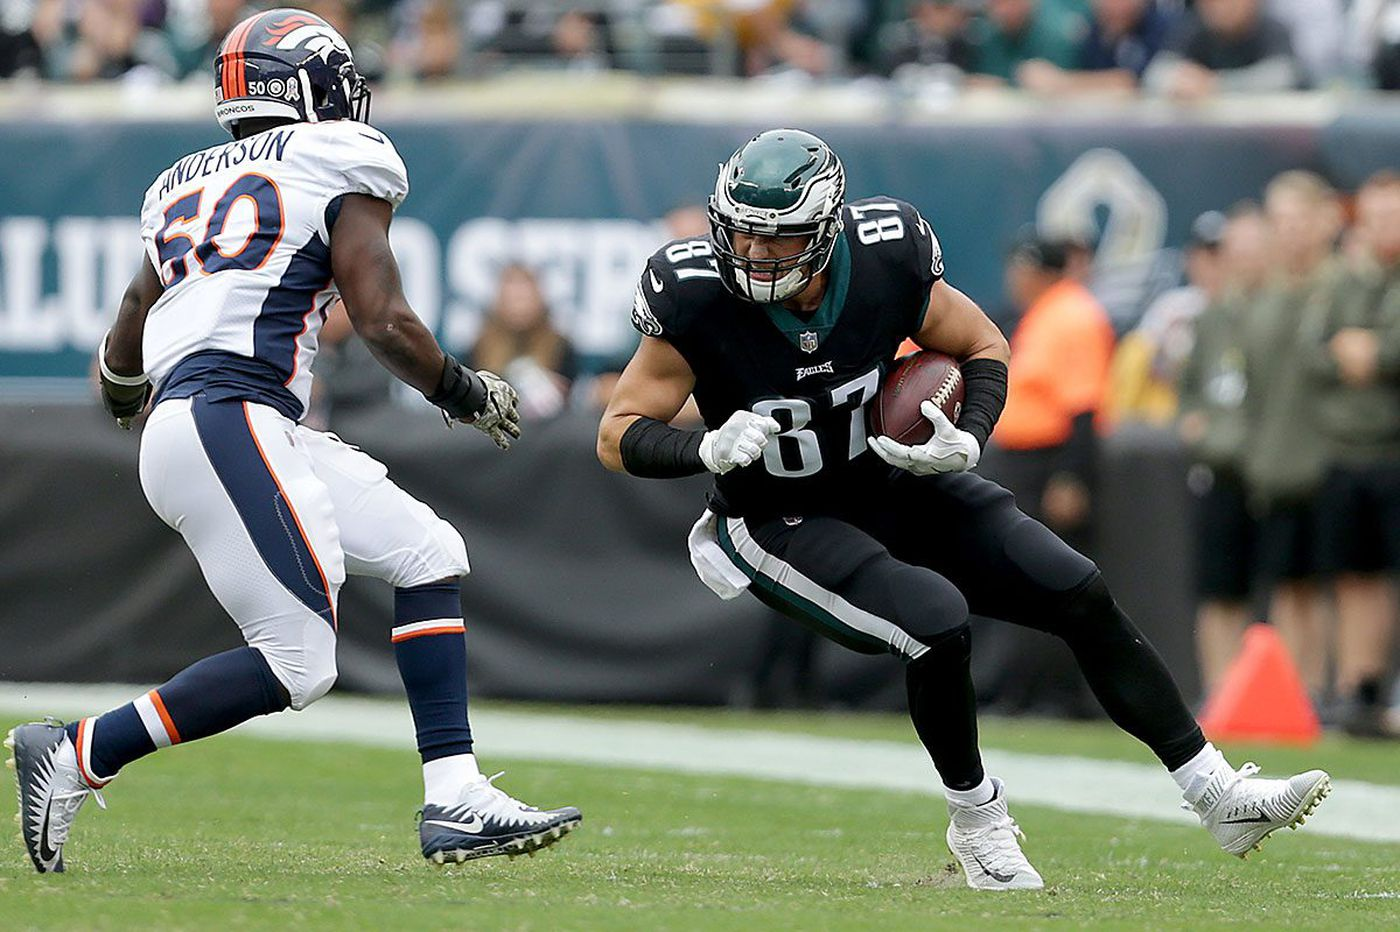 Tight spot without Zach Ertz? Brent Celek, Trey Burton help Eagles dominate